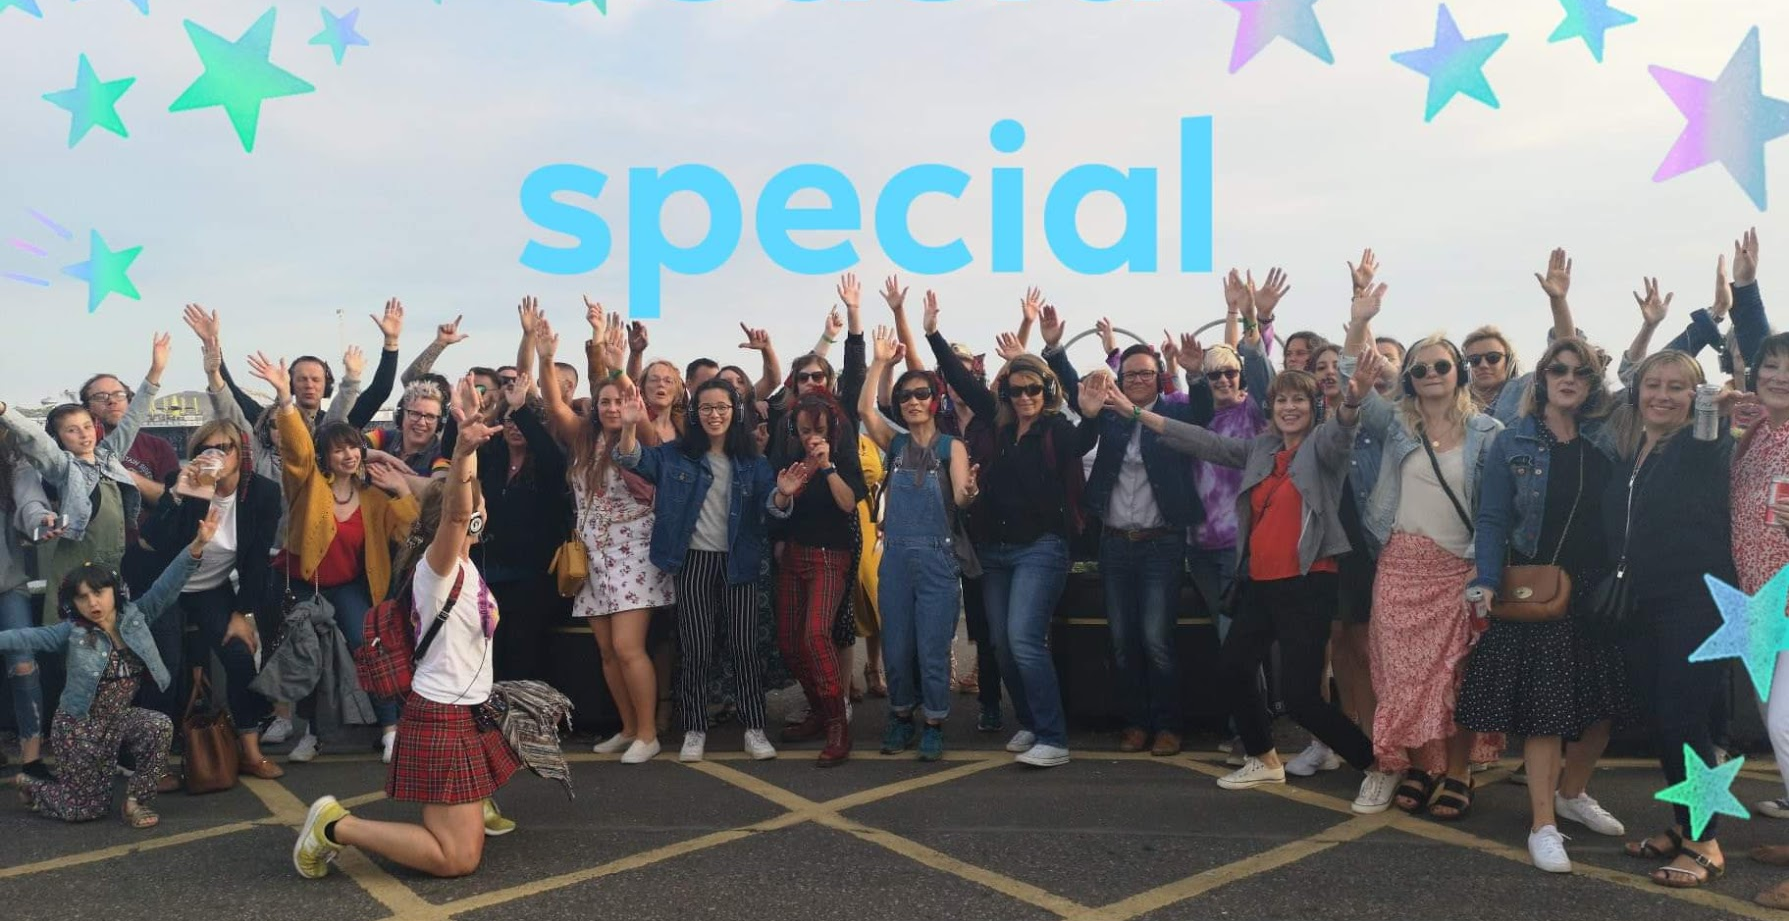 Brighton Seaside Special Boogie Shoes Silent Disco Walkin' Tours